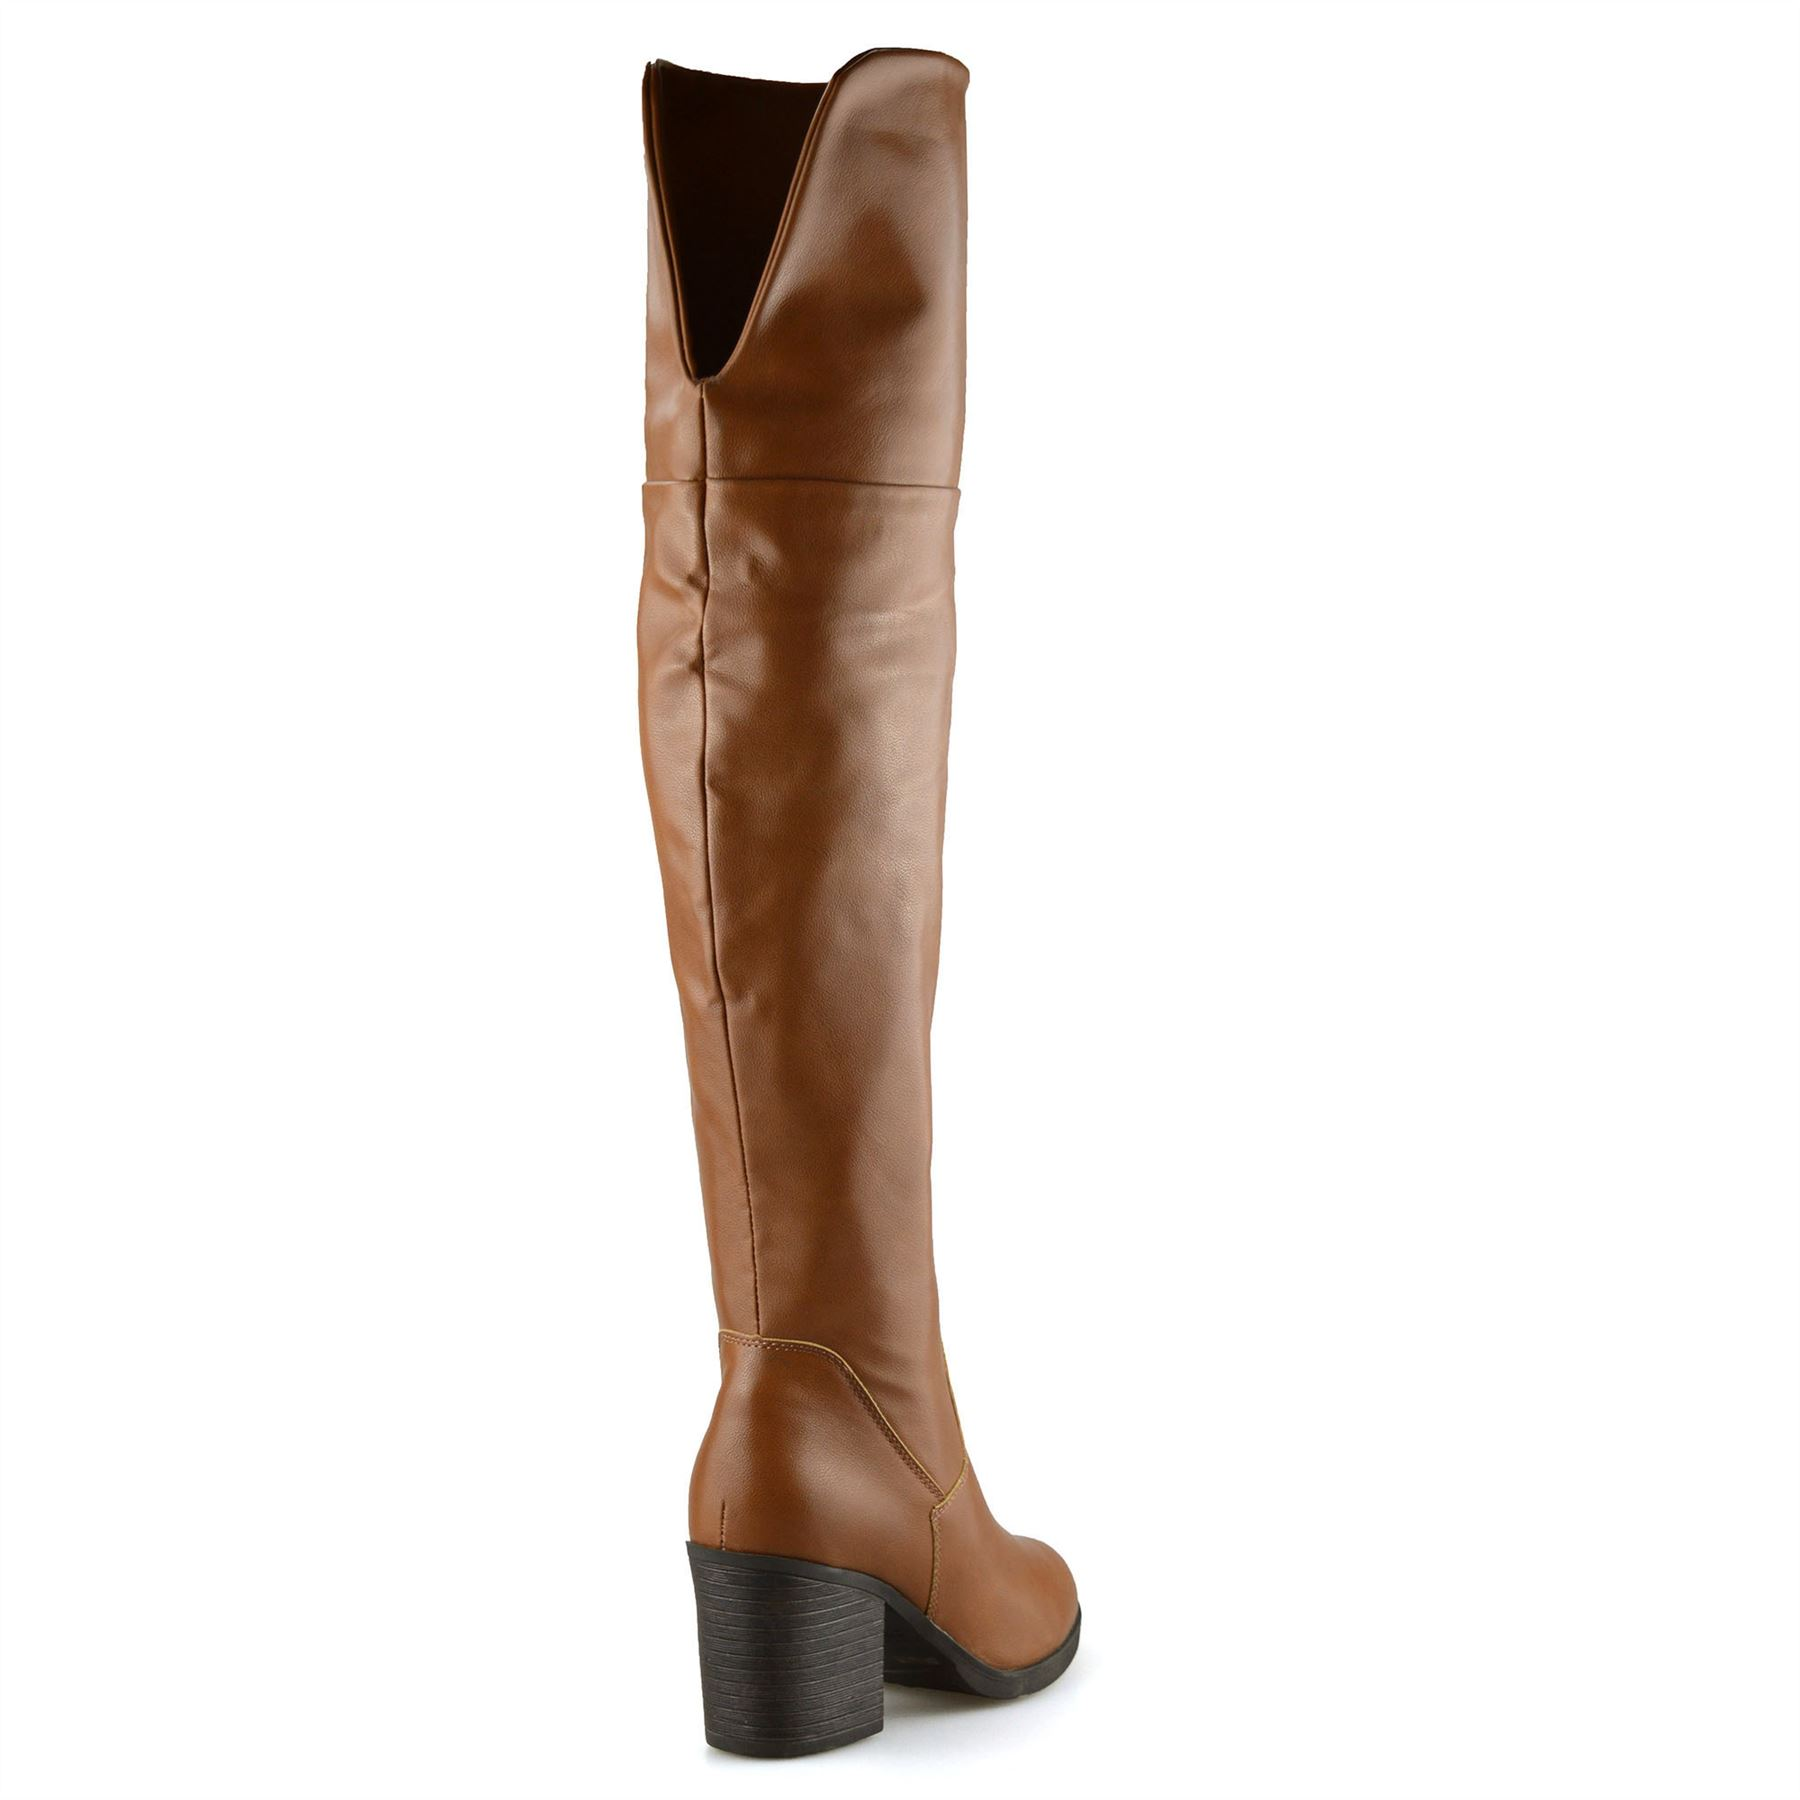 Ladies-Womens-Knee-High-Block-Heel-Zip-Up-Winter-Riding-Biker-Boots-Shoes-Size